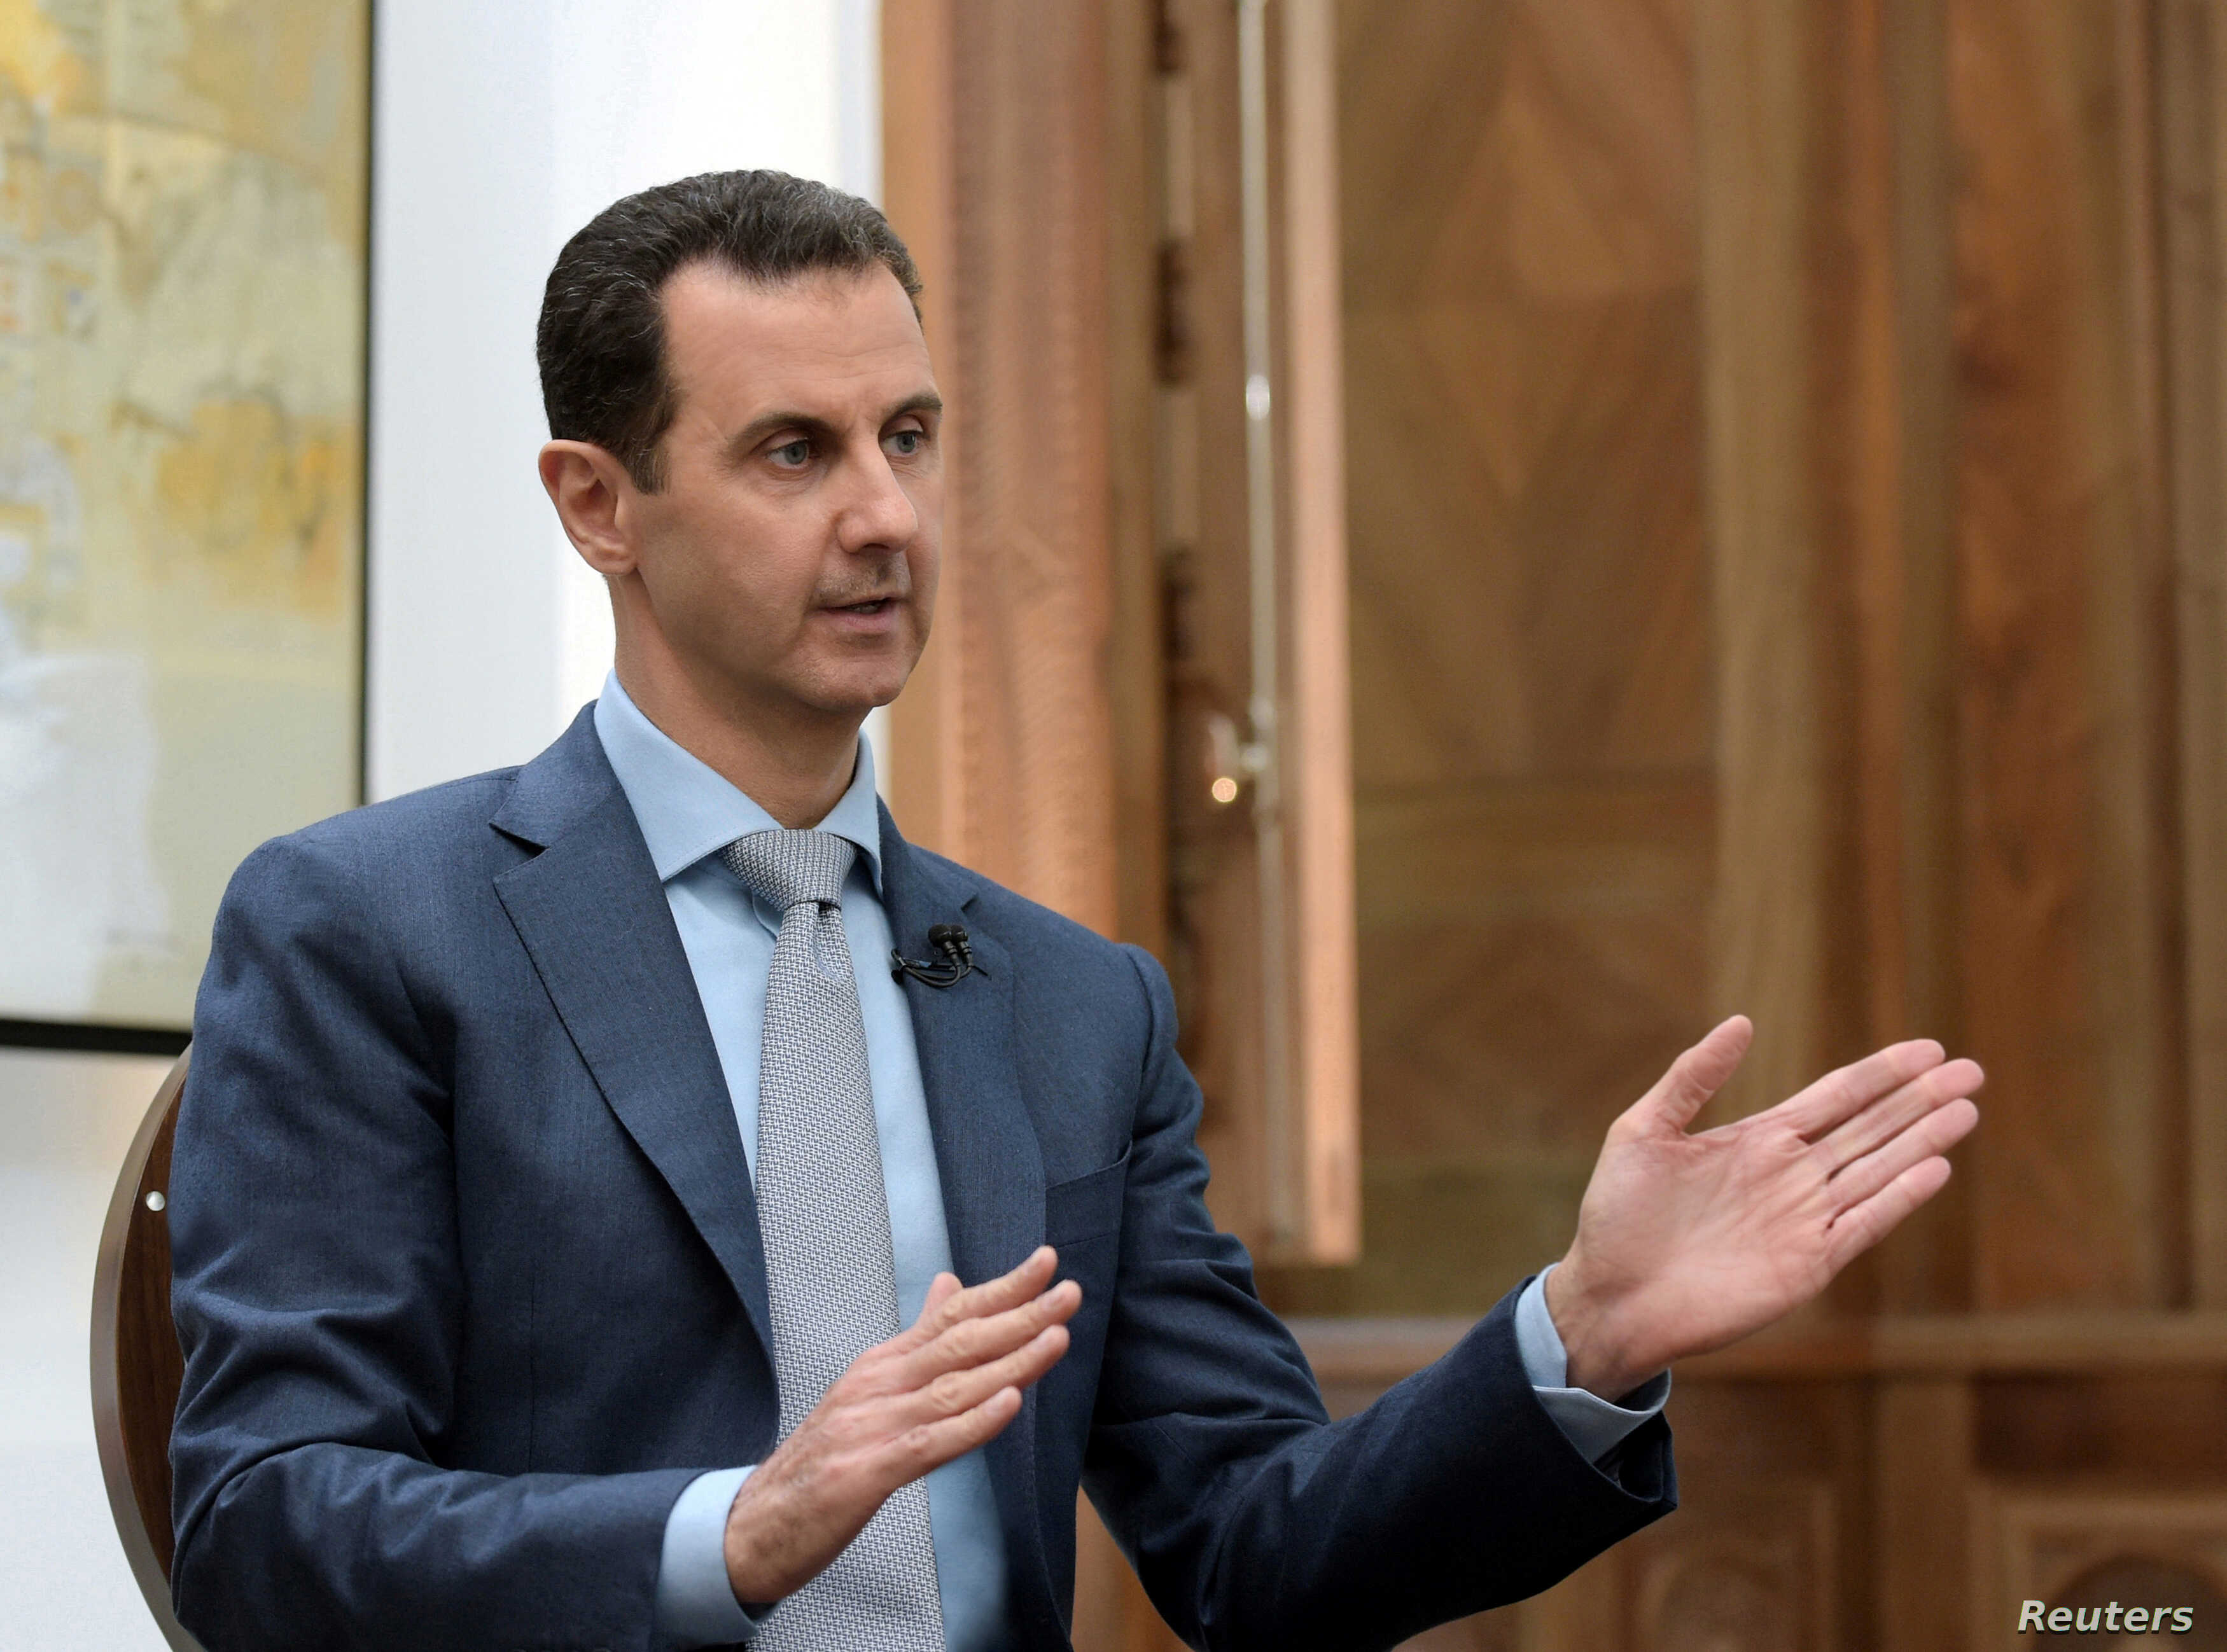 Syria's President Bashar al-Assad is interviewed Feb. 10, 2017, in Syria. Thousands of Afghans from Iran are involved in the Syrian conflict, many sent against their will, Human Rights Watch reports.